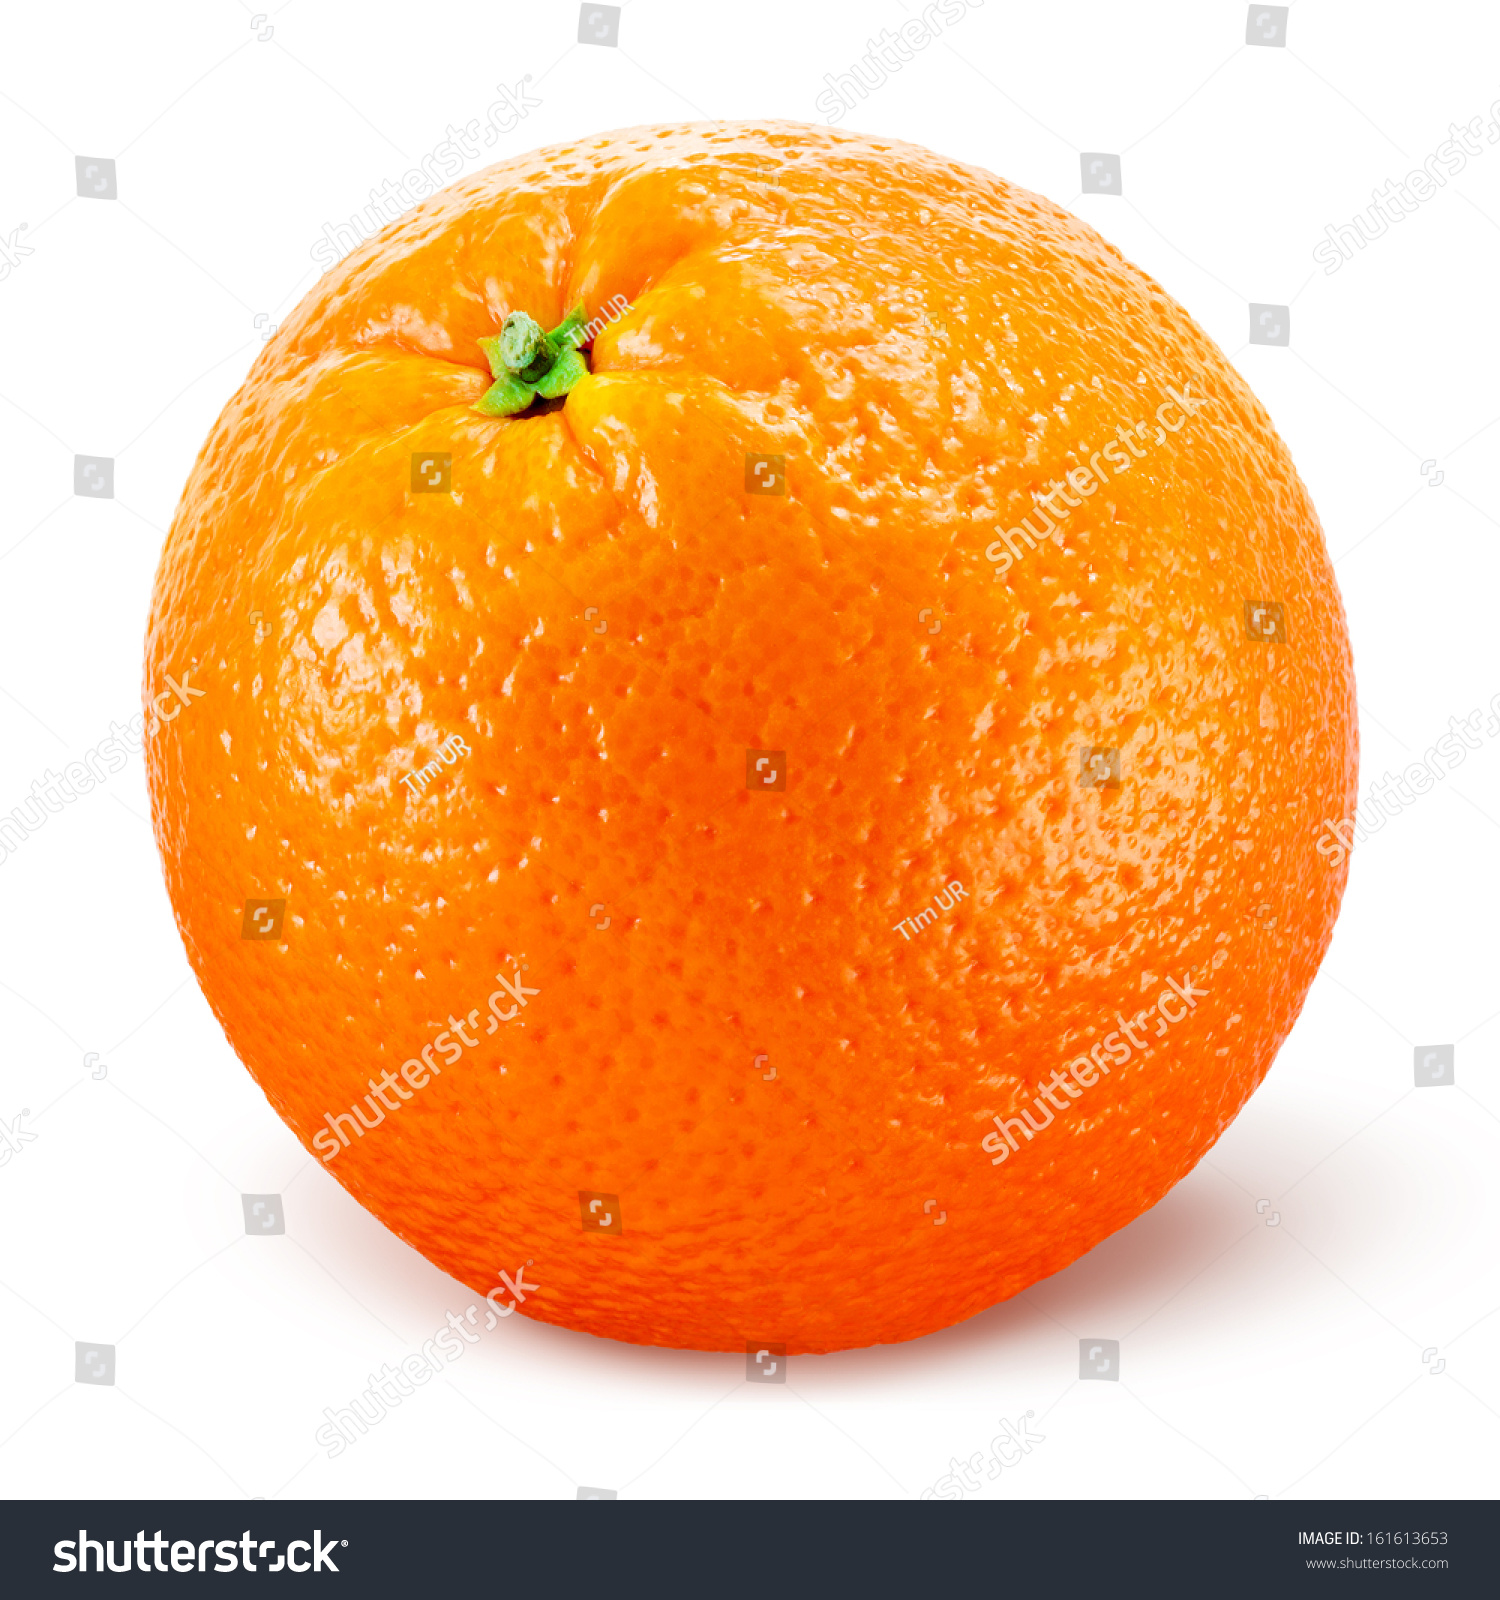 Orange Fruit Isolated On White Stock Photo 161613653 ...